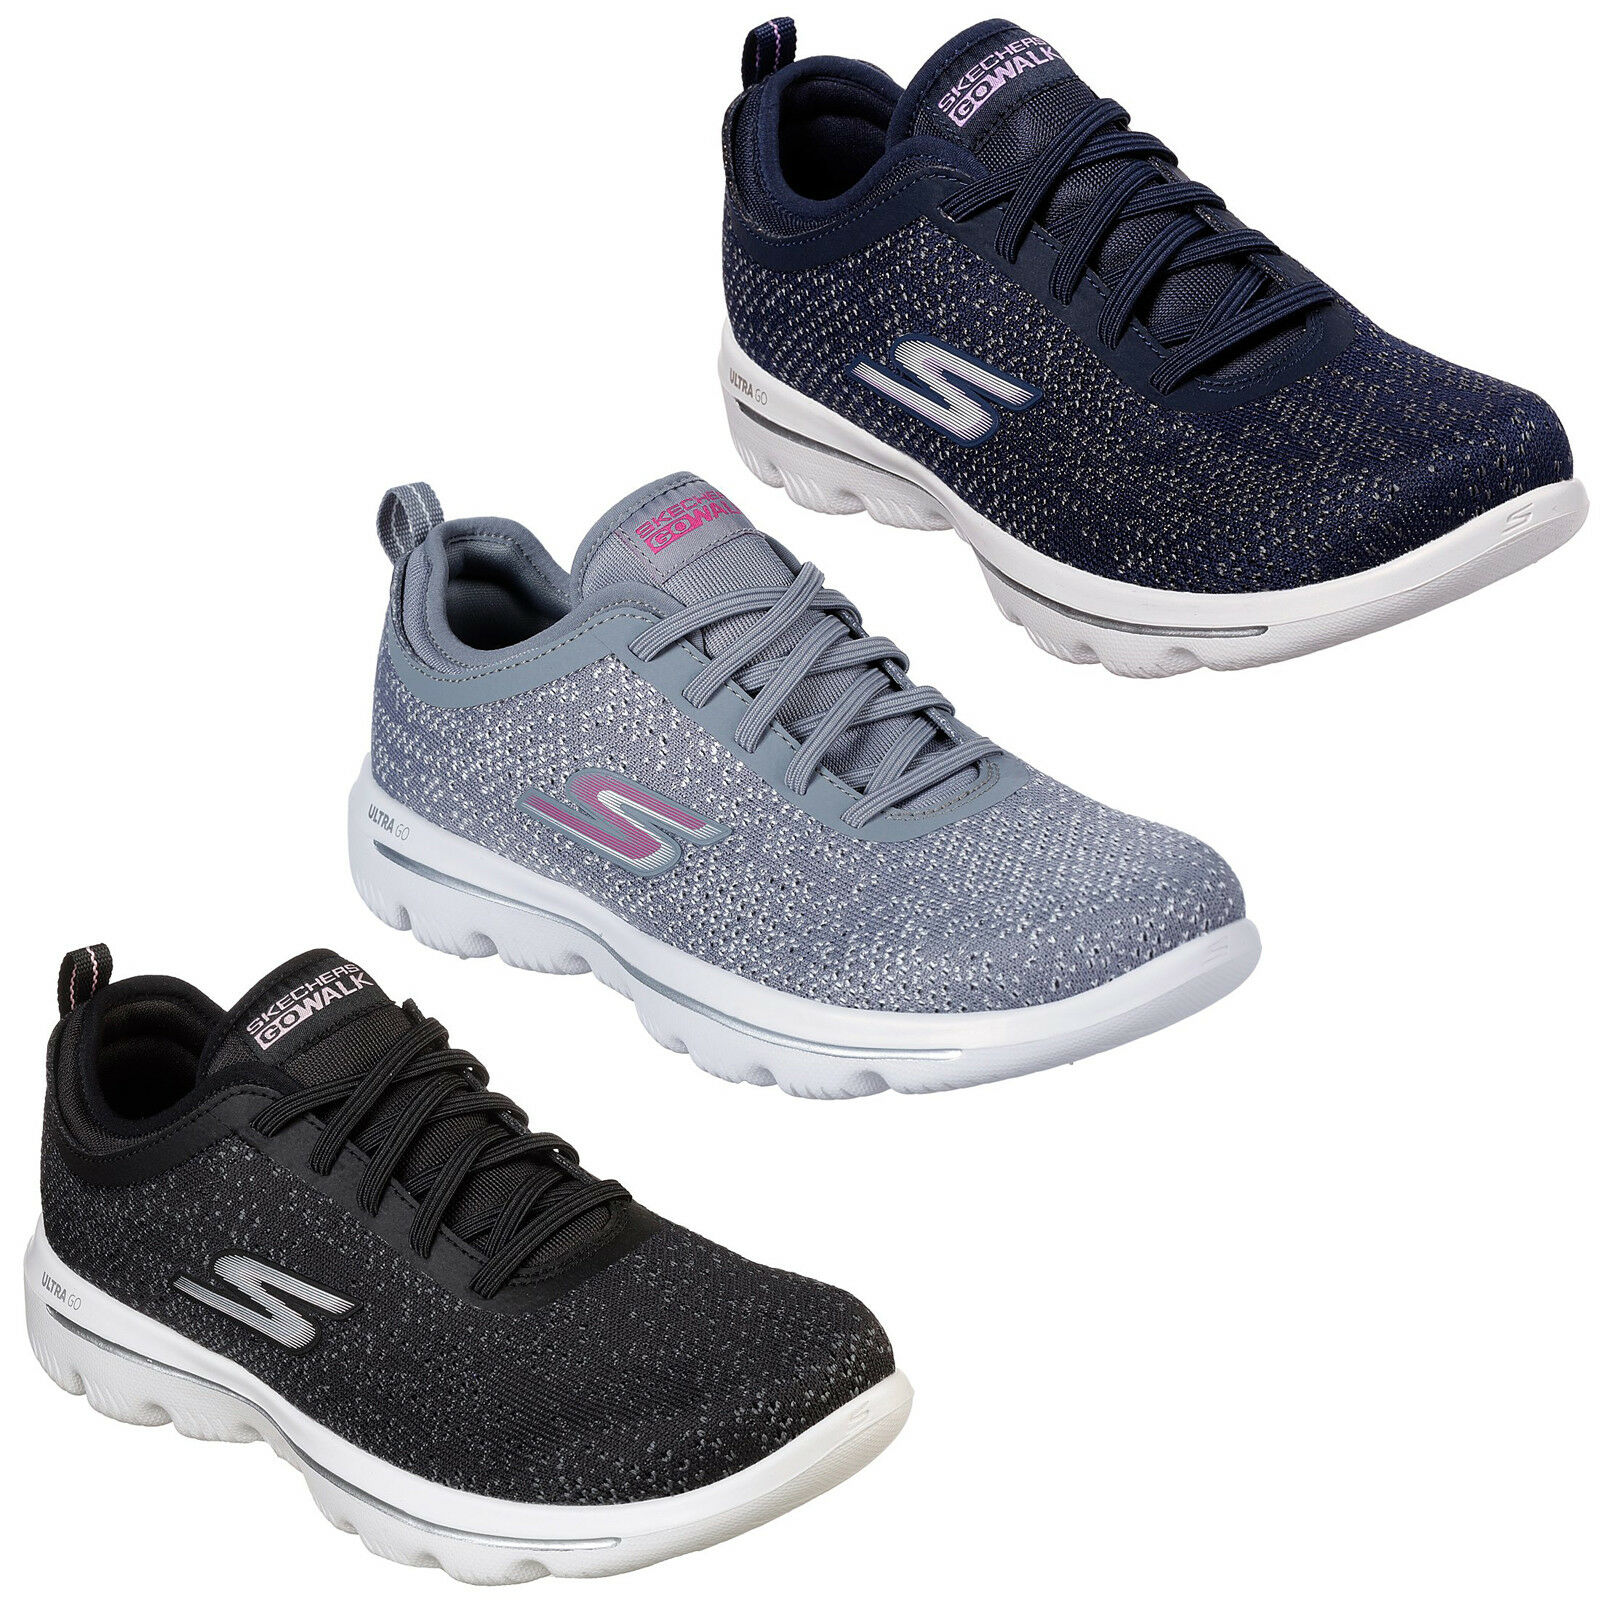 Skechers GoWalk Evolution Ultra Mirable Trainers Trainers